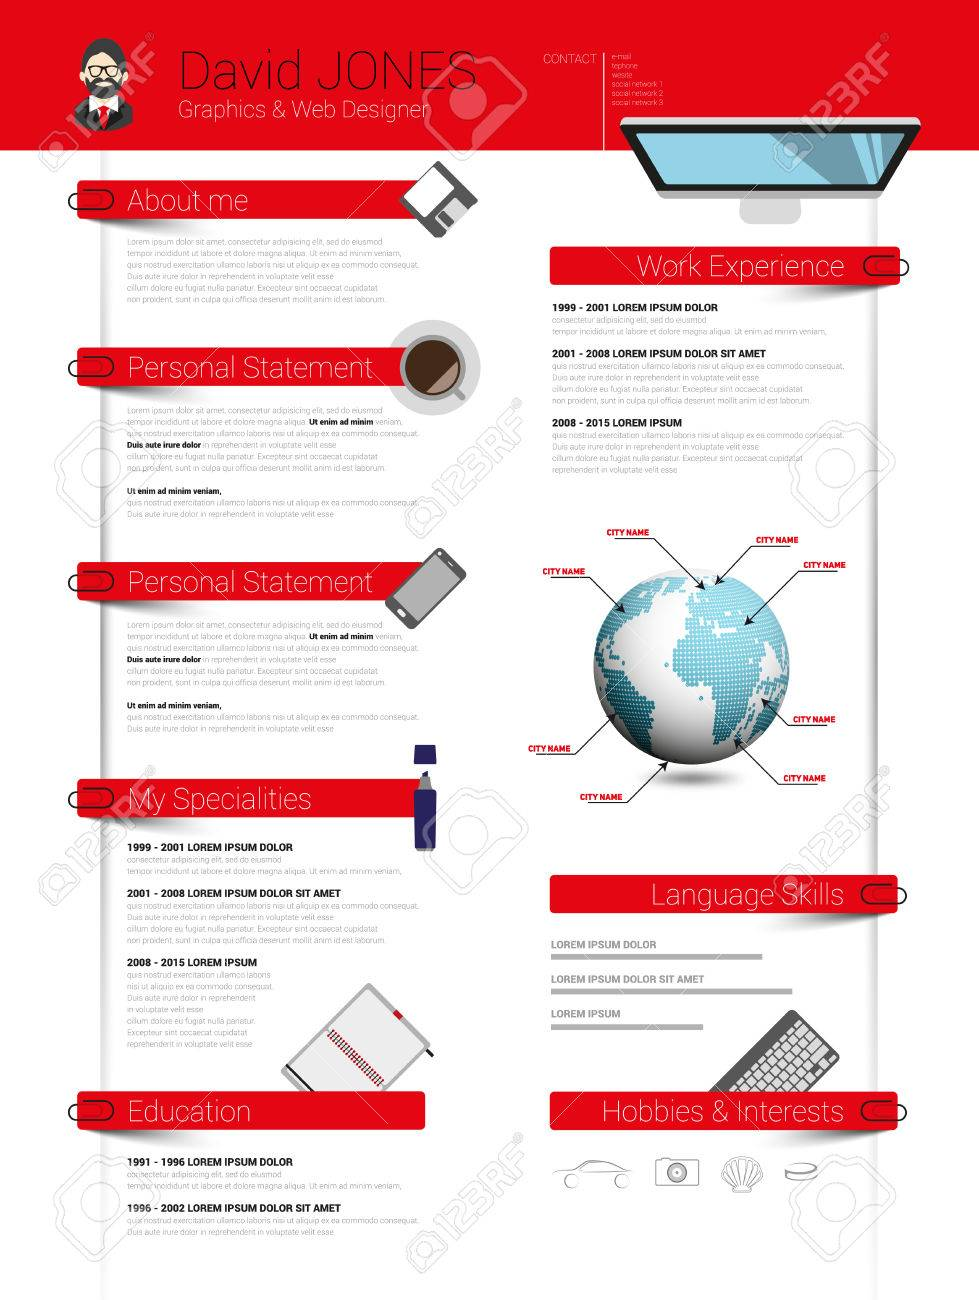 Resume Minimalist Cv Template With Flat Design Items Royalty Free ...